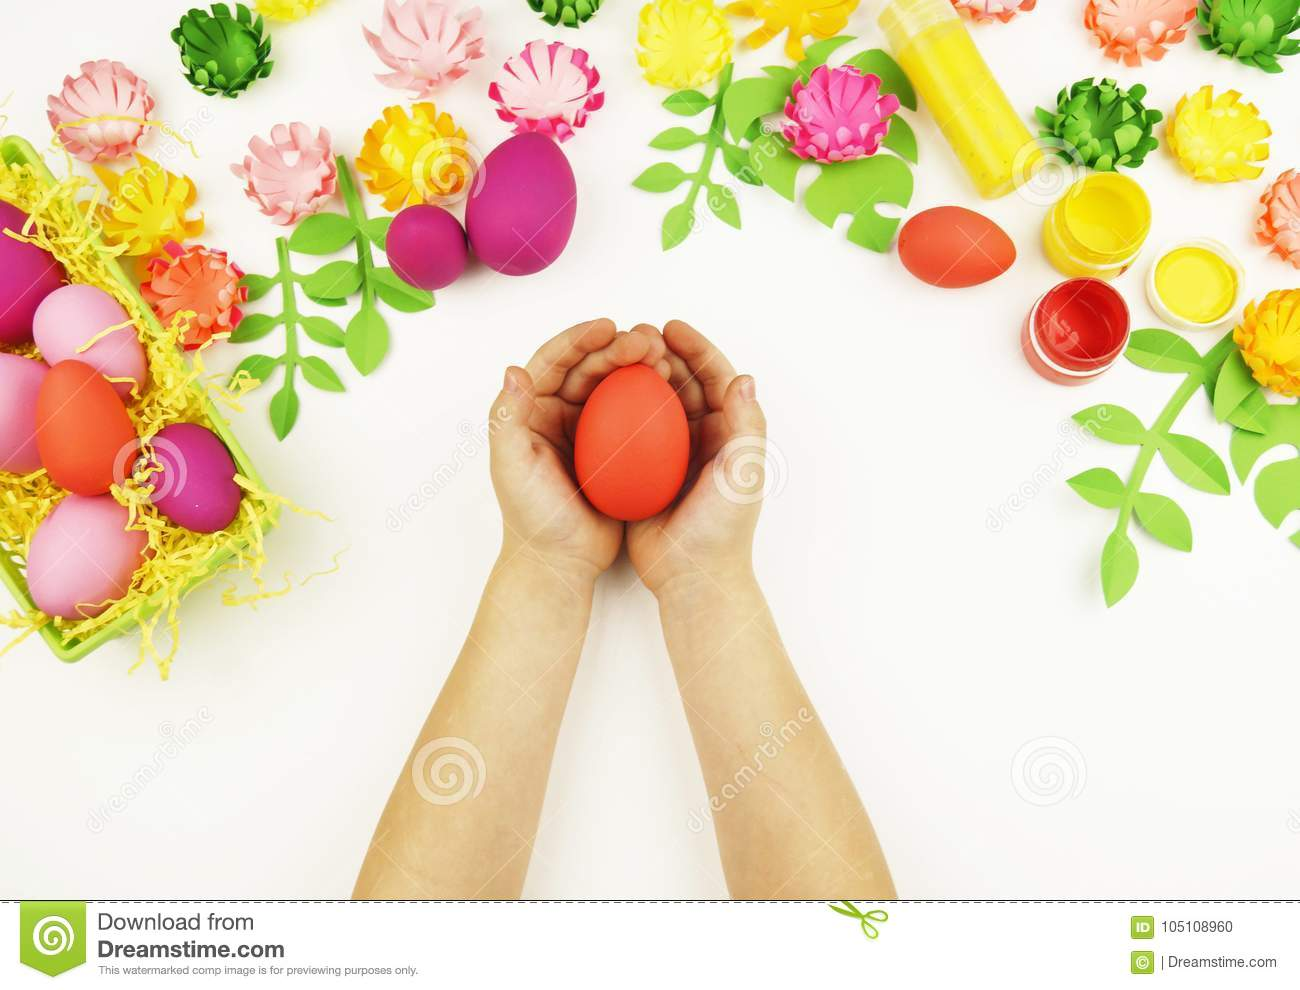 Childrens hands hold an easter egg easter spring childrens childrens hands hold an easter egg easter spring childrens creativity easter preparation for the easter partyper flowers and leaves mightylinksfo